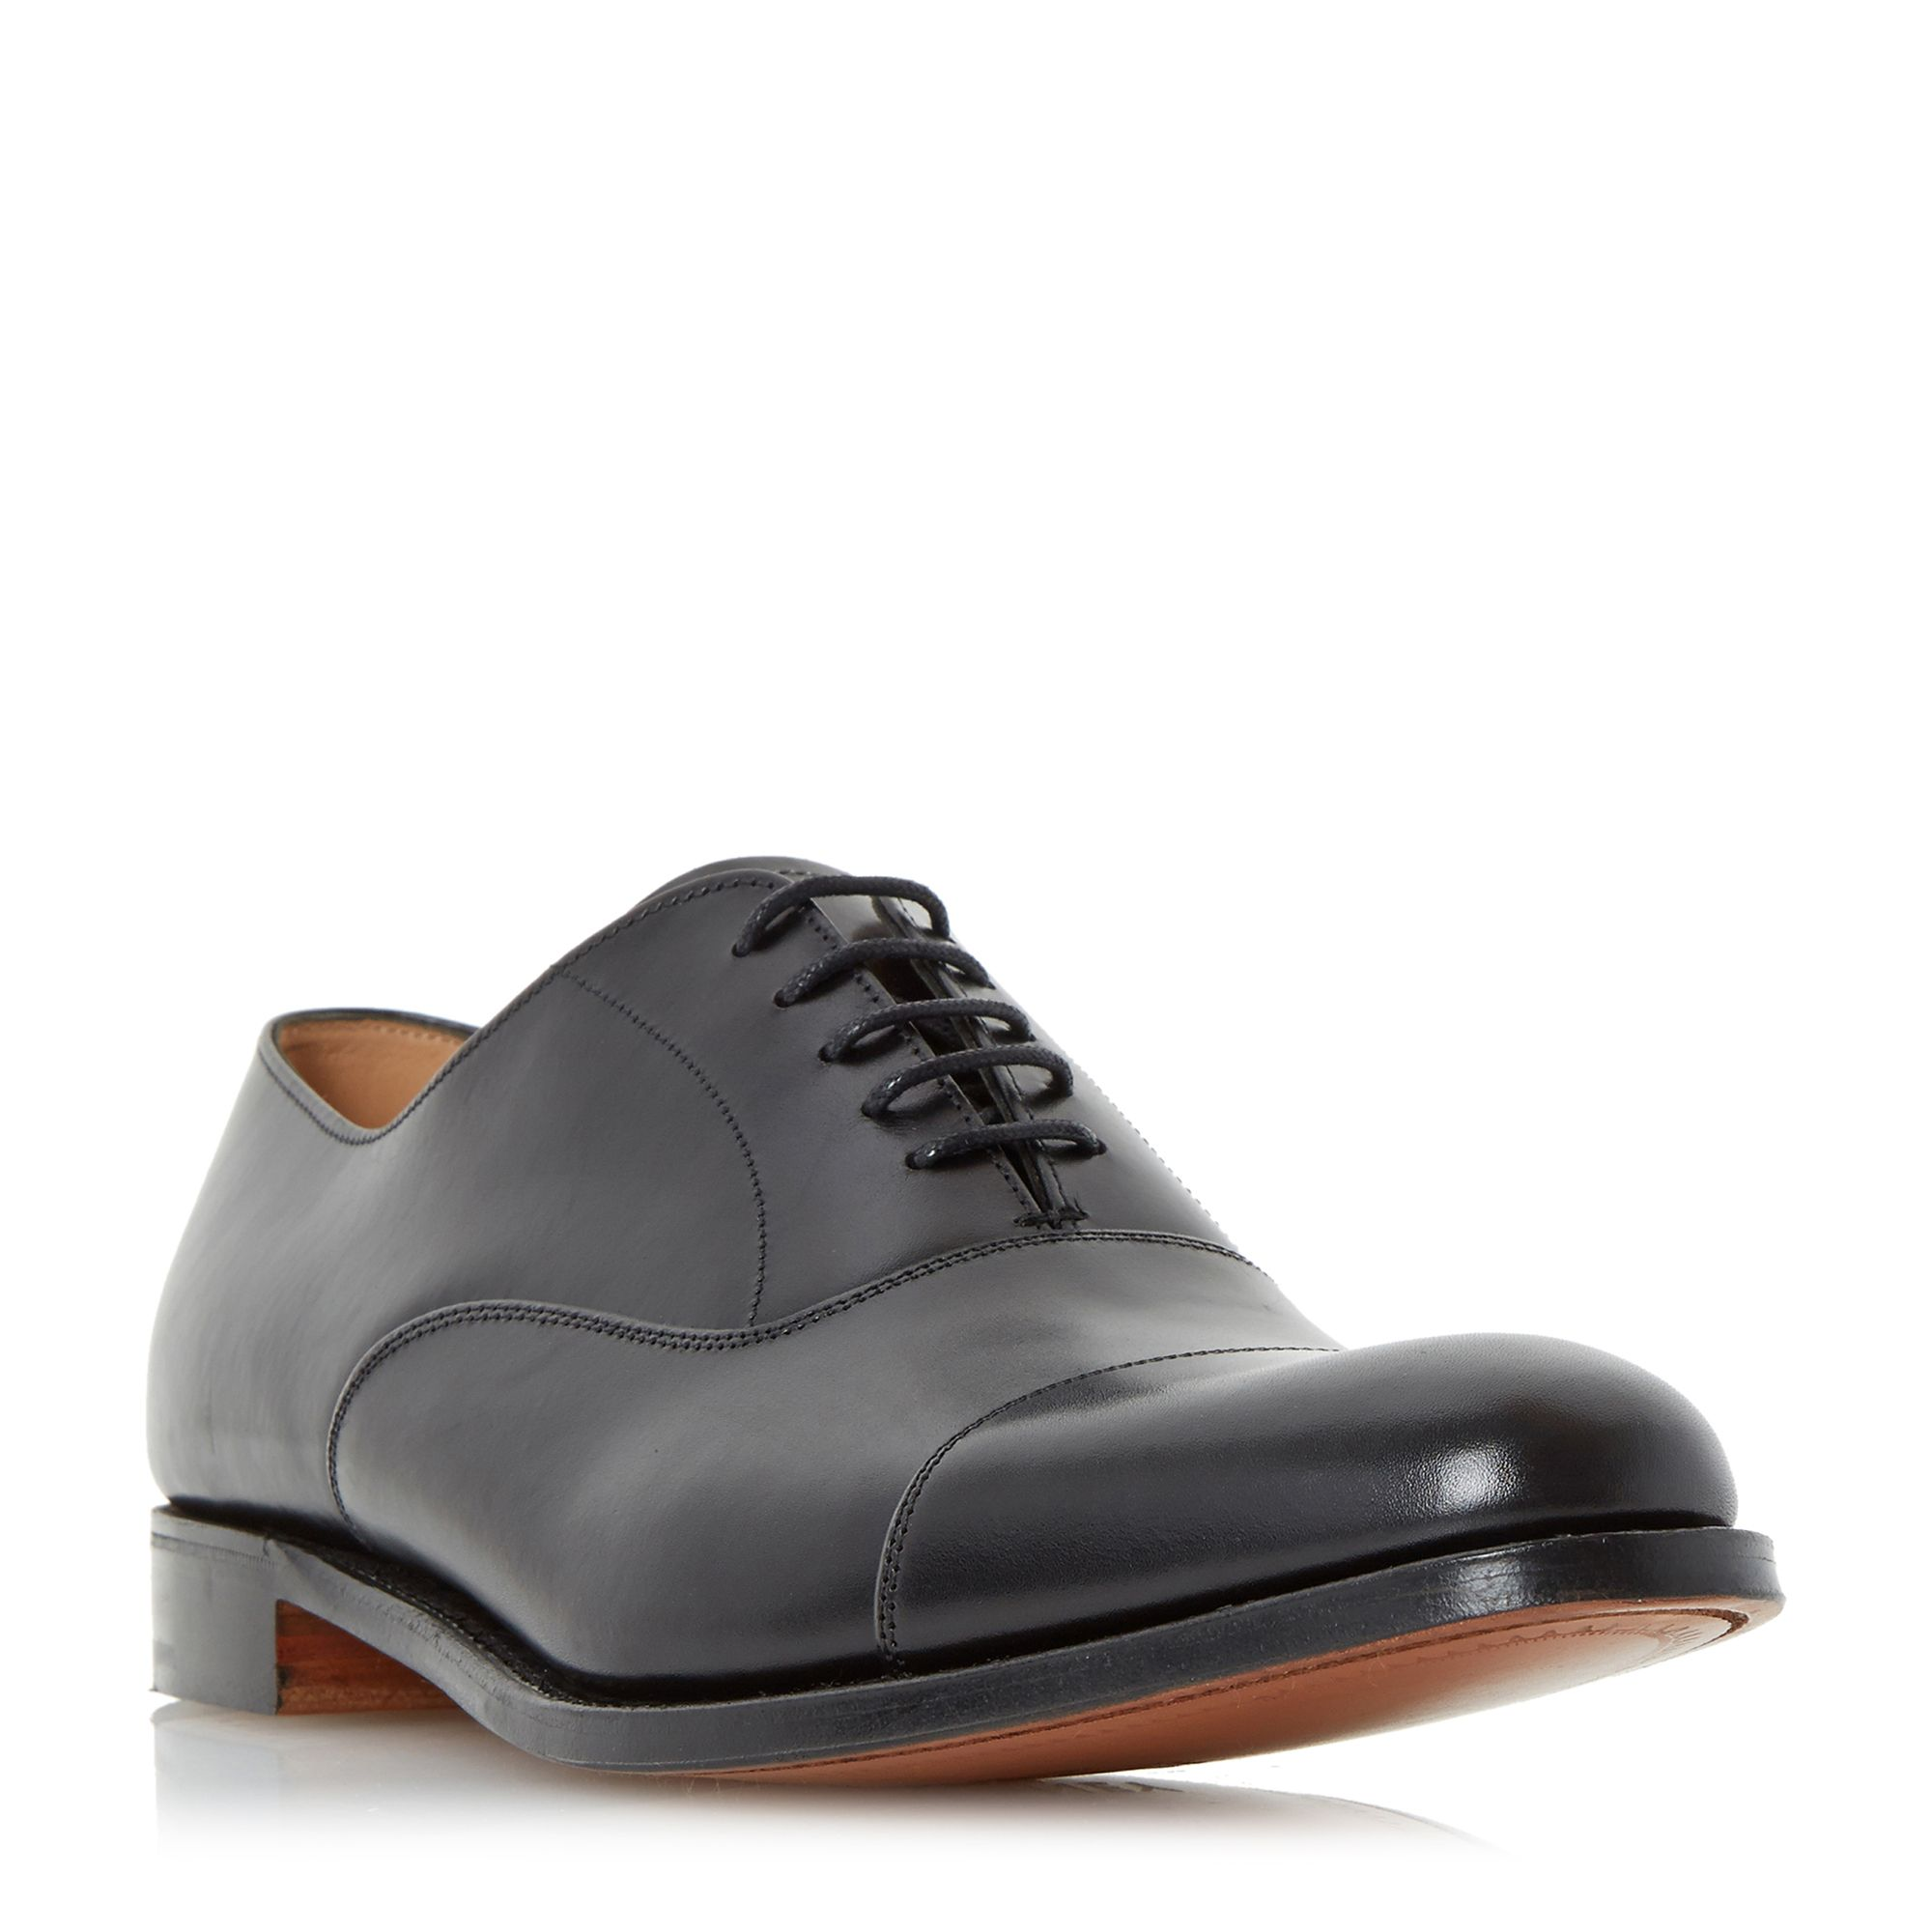 Cheaney Mens Cheaney Mens Lime Classic Toecap Oxford Shoes, Black